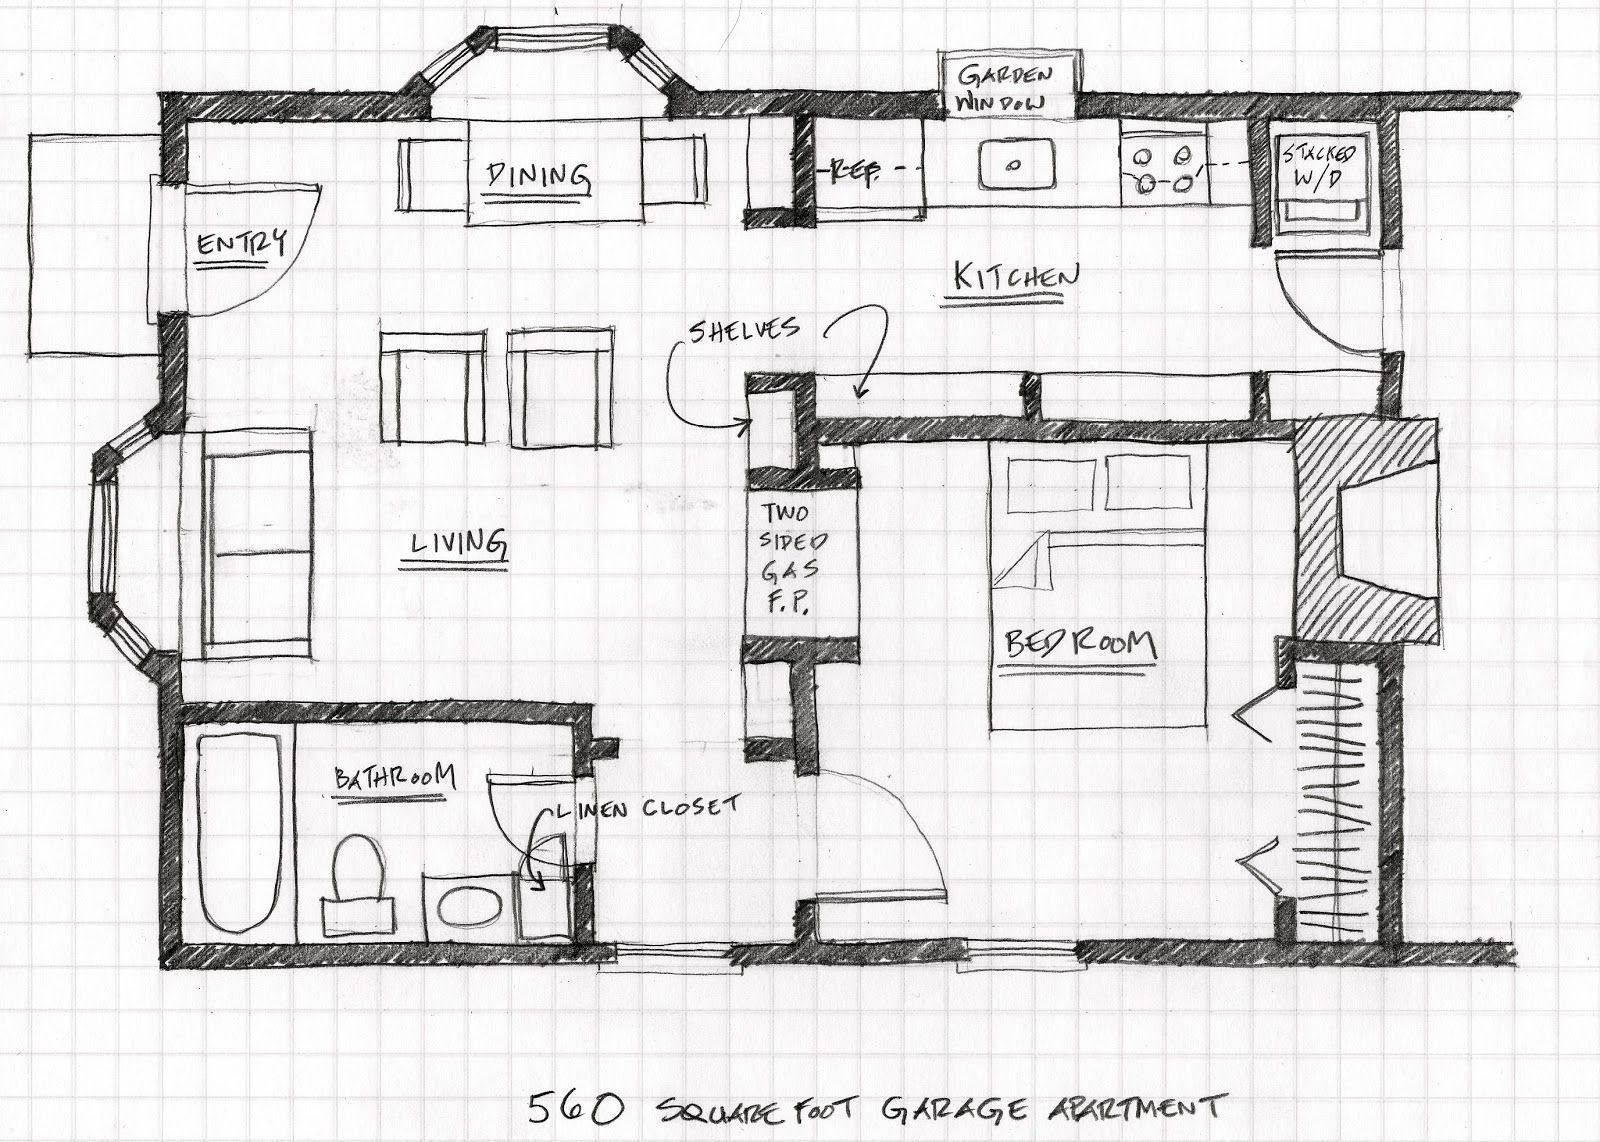 Small scale homes floor plans for garage to apartment for Small home blueprints free